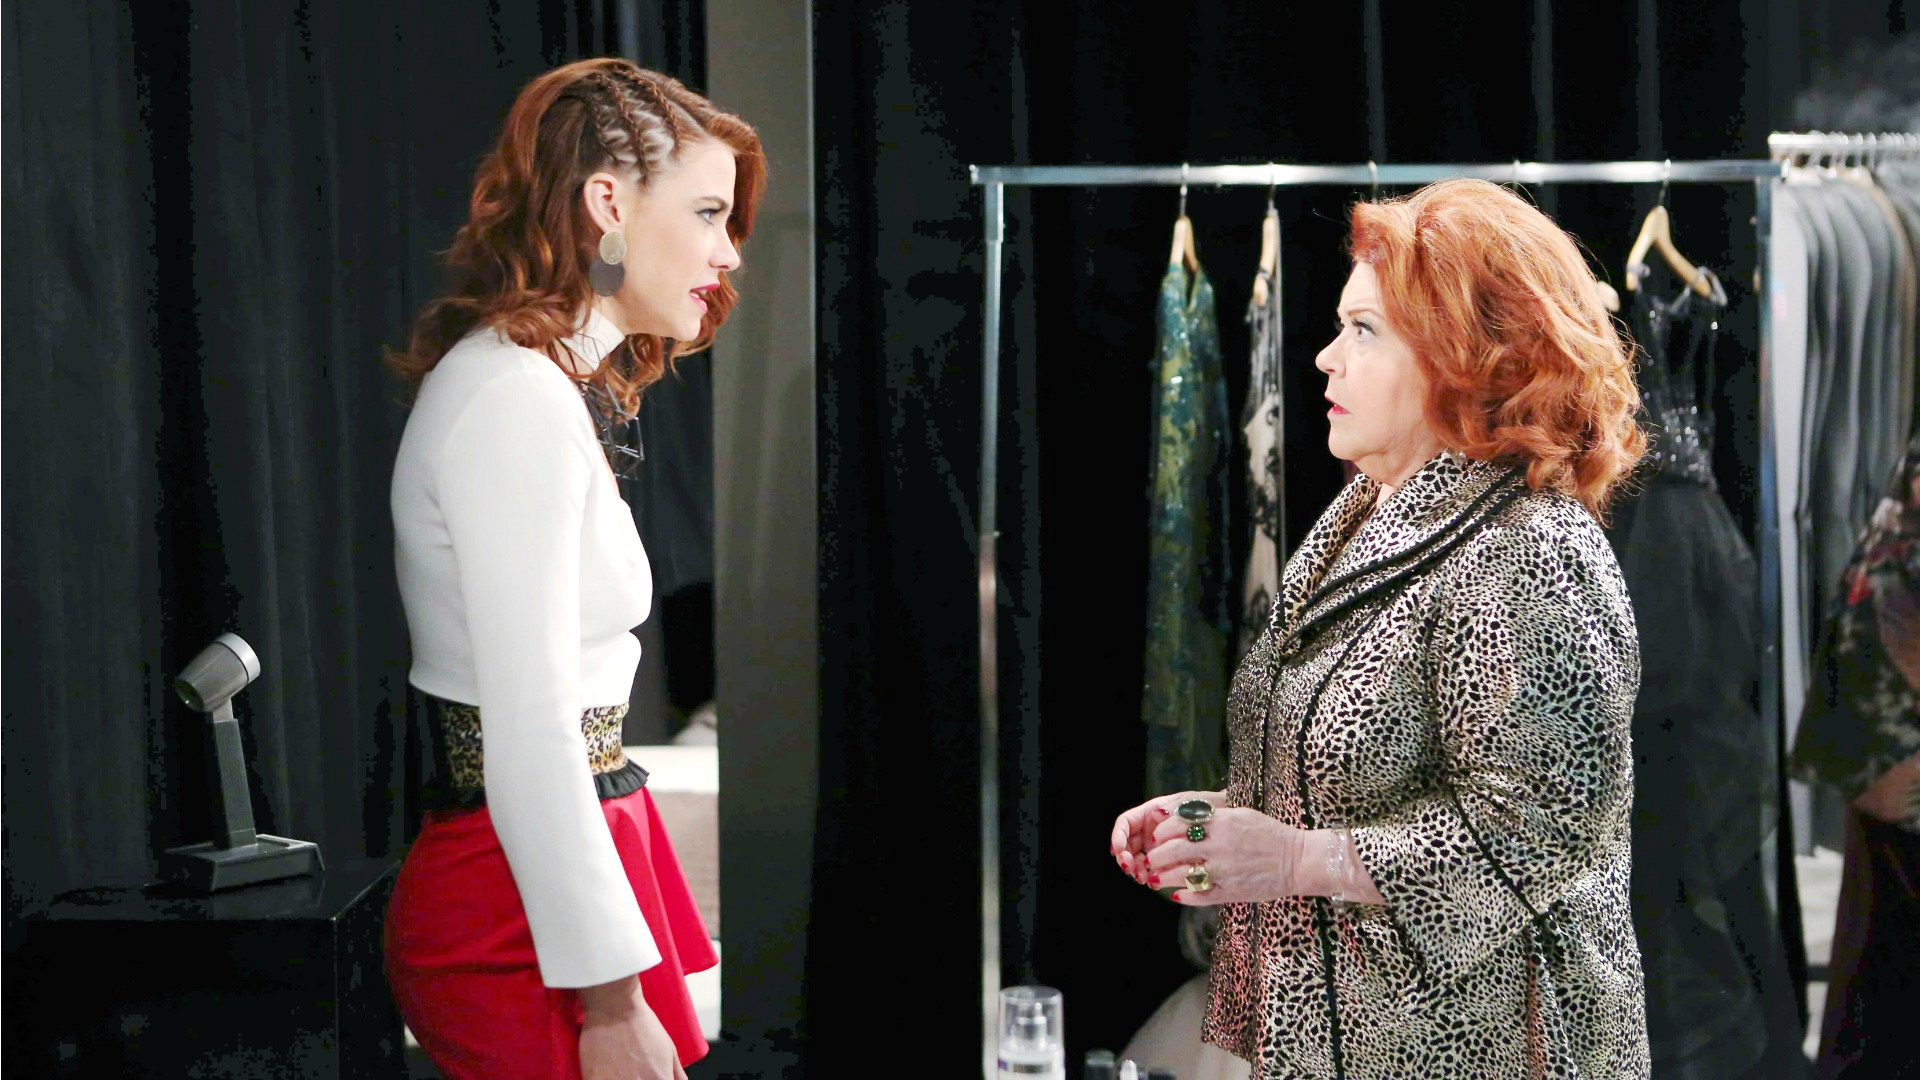 Sally confronts Shirley about using Coco to obtain the Forrester's sketches.